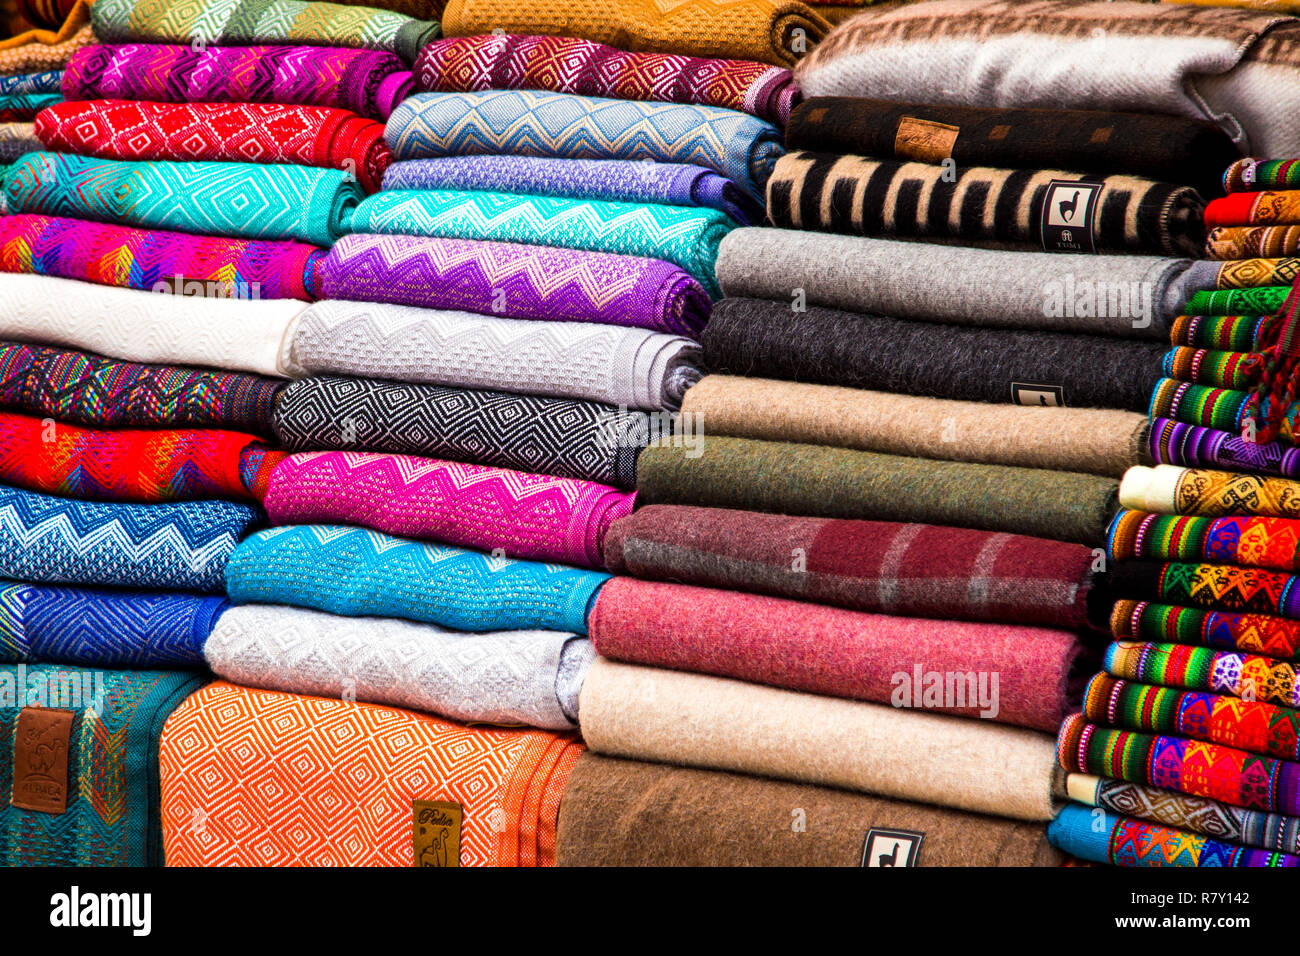 Alpaca wool scarves at the market in Pisac, Sacred Valley, Peru - Stock Image